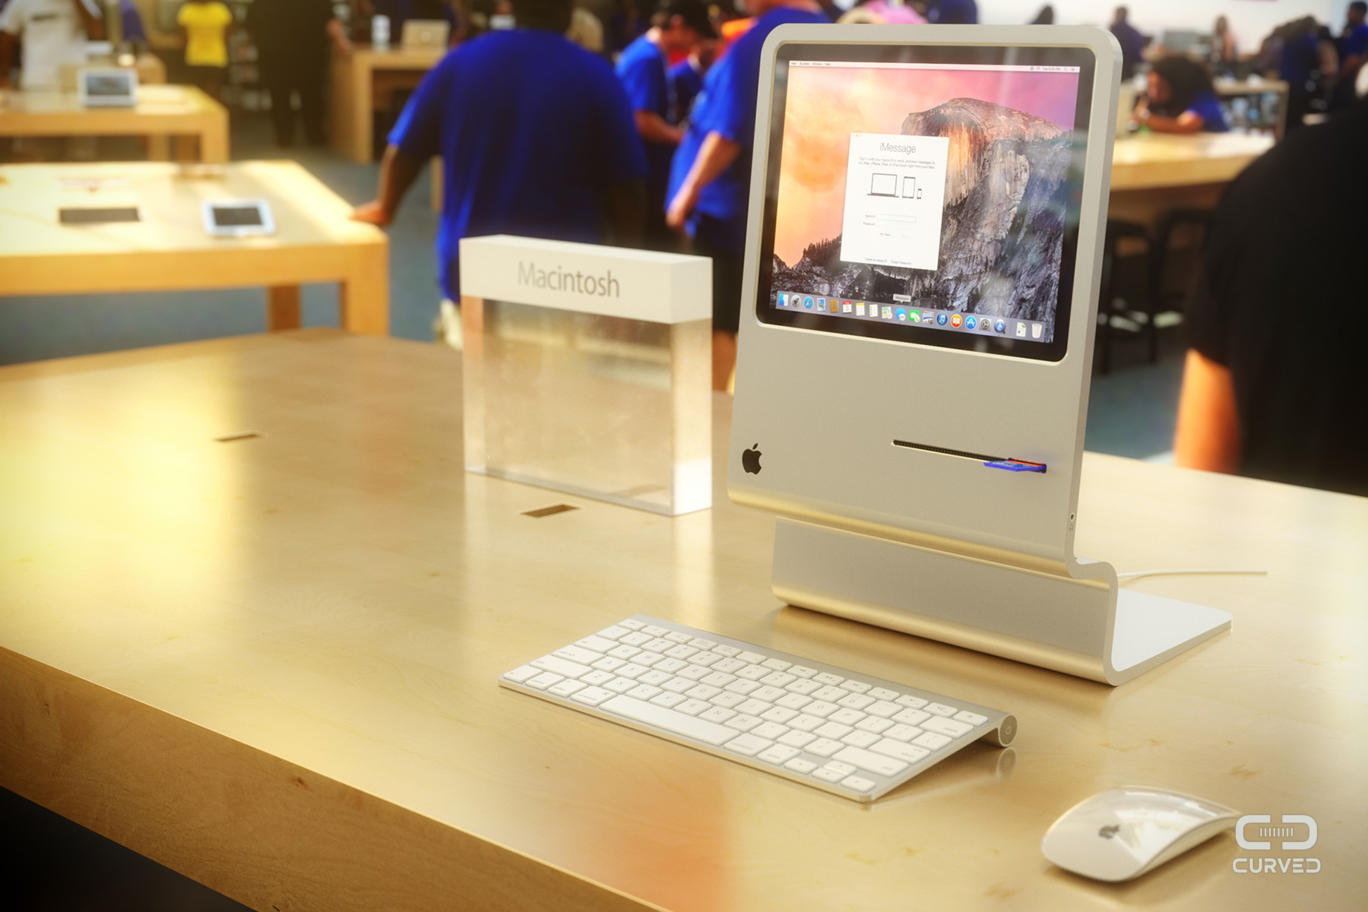 Apple Concepts 2015 Apple Macintosh Imac Concept